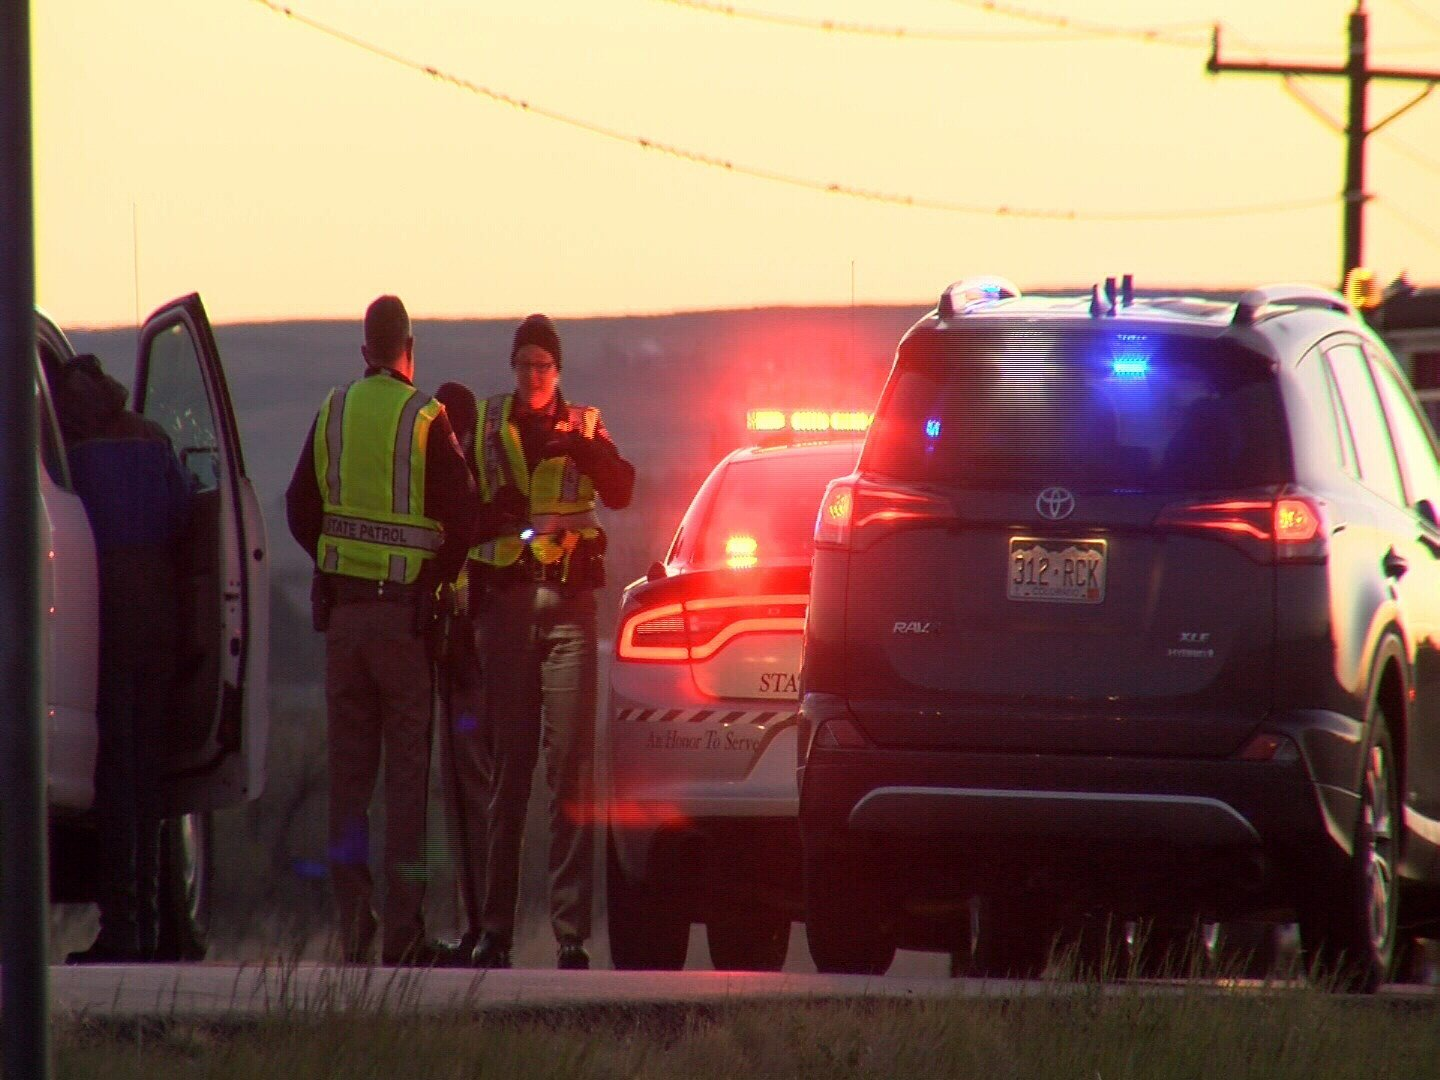 Colorado State Troopers attend the scene of a fatal head on collision along US 24 near Peyton on May 23, 2017